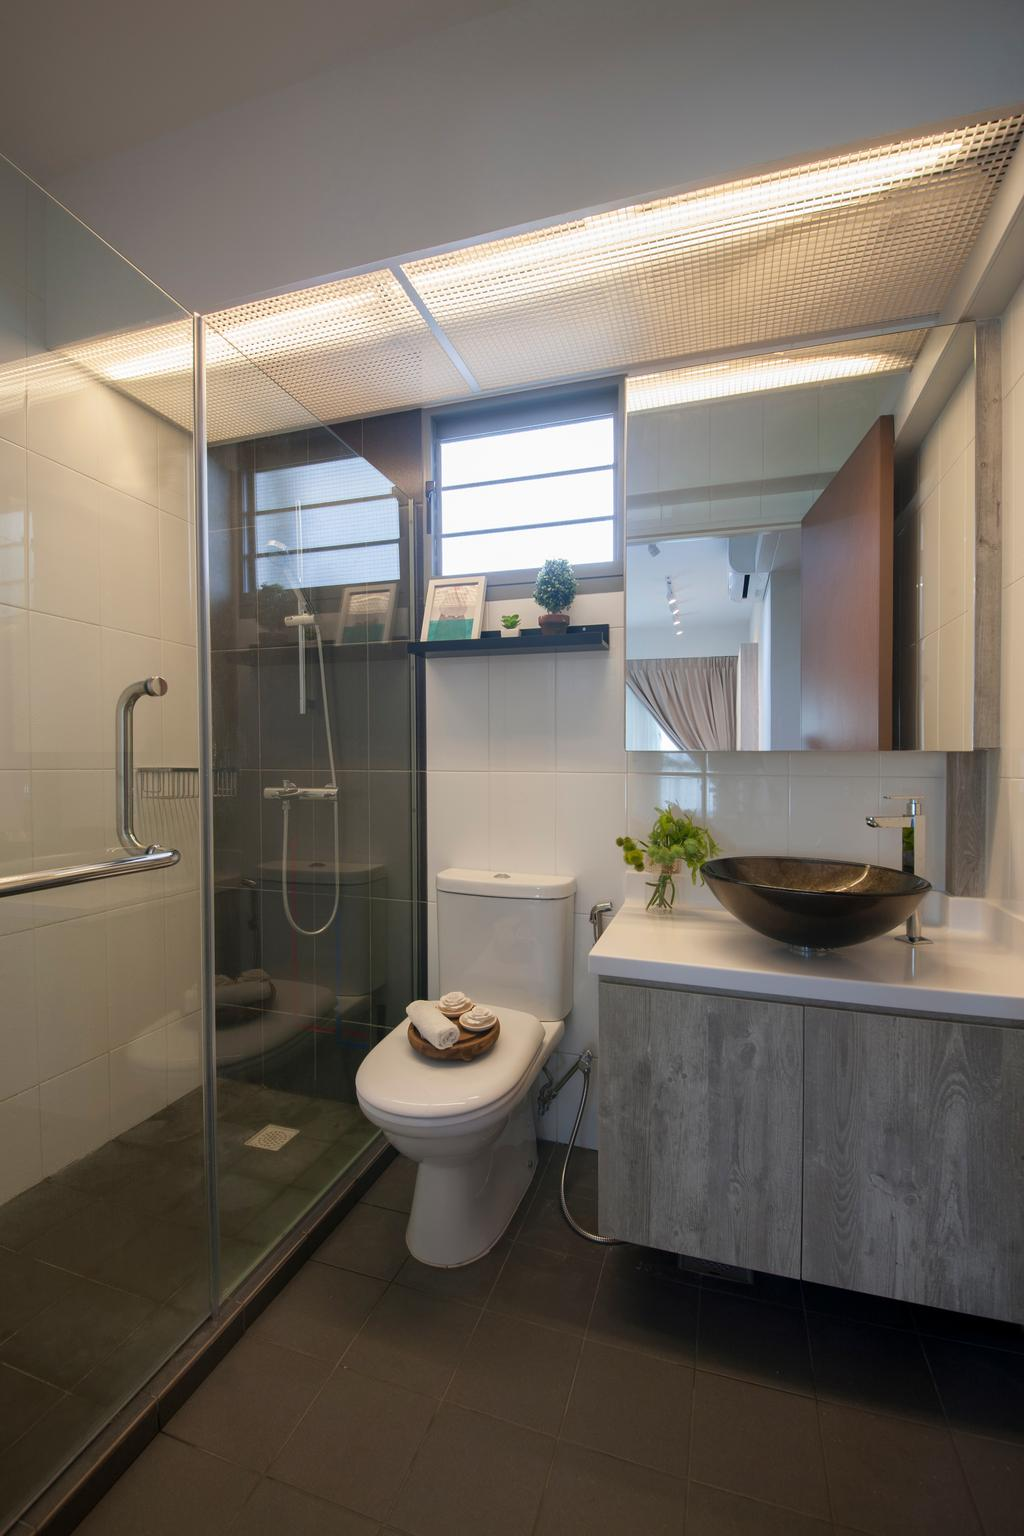 Scandinavian, HDB, Bathroom, Punggol Waterway Cascadia, Interior Designer, Starry Homestead, Modern Contemporary Bathroom, Wooden Bathroom Cabinet, White Sink Countertop, Protruding Sink, Hidden Interior Lighting, Glass Panelled Shower, Flora, Jar, Plant, Potted Plant, Pottery, Vase, Indoors, Interior Design, Room